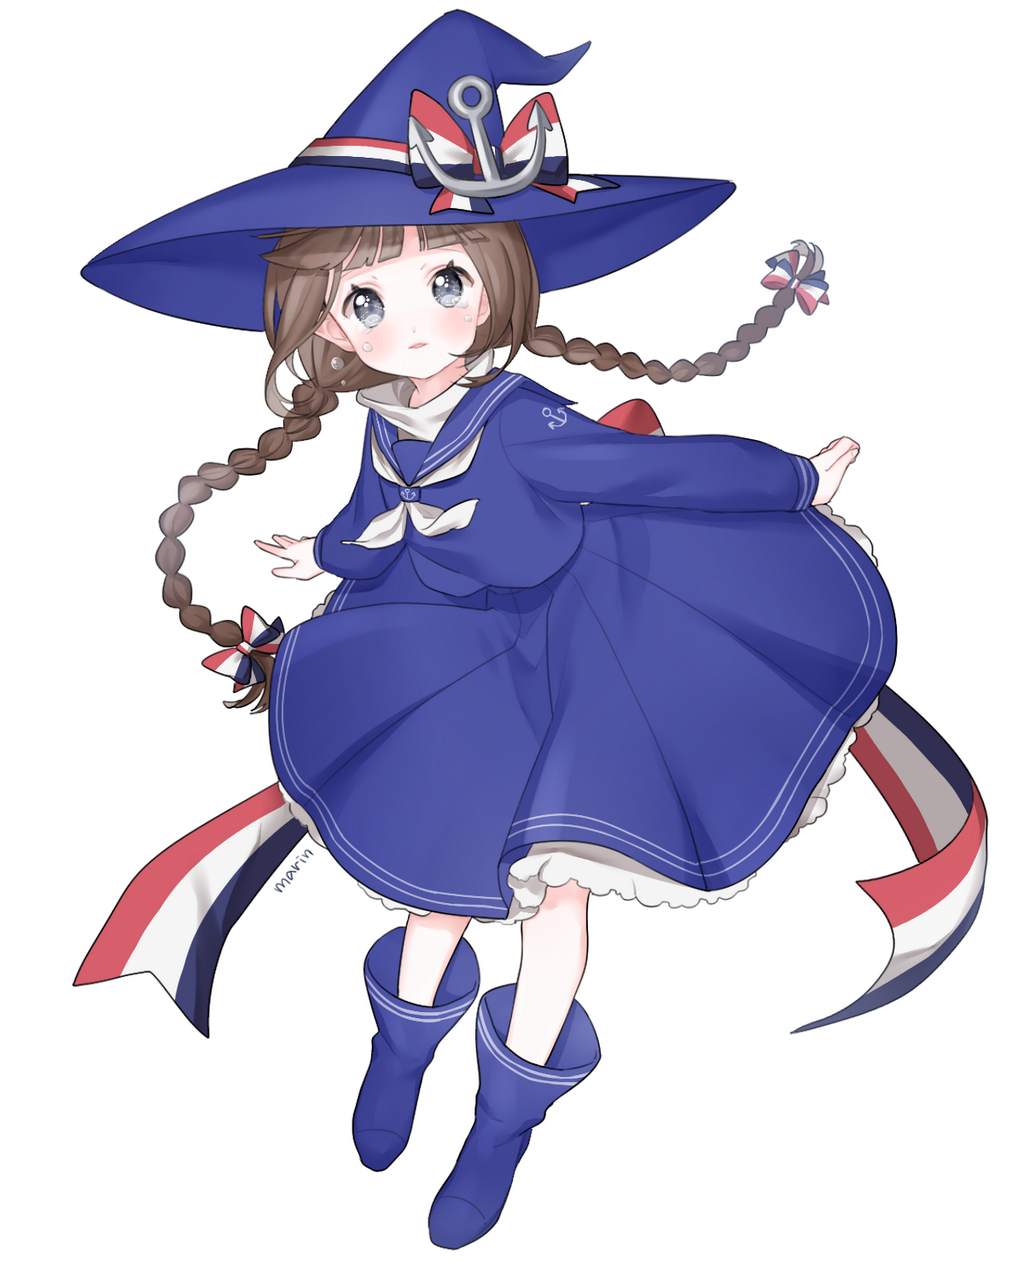 Anime Picture Search Engine 1girl Anchor Blue Eyes Bow Braid Brown Hair Crying Crying With Eyes Open Hair Bow Hat Hat Bow Highre Blue Sea Sailor Dress Anime